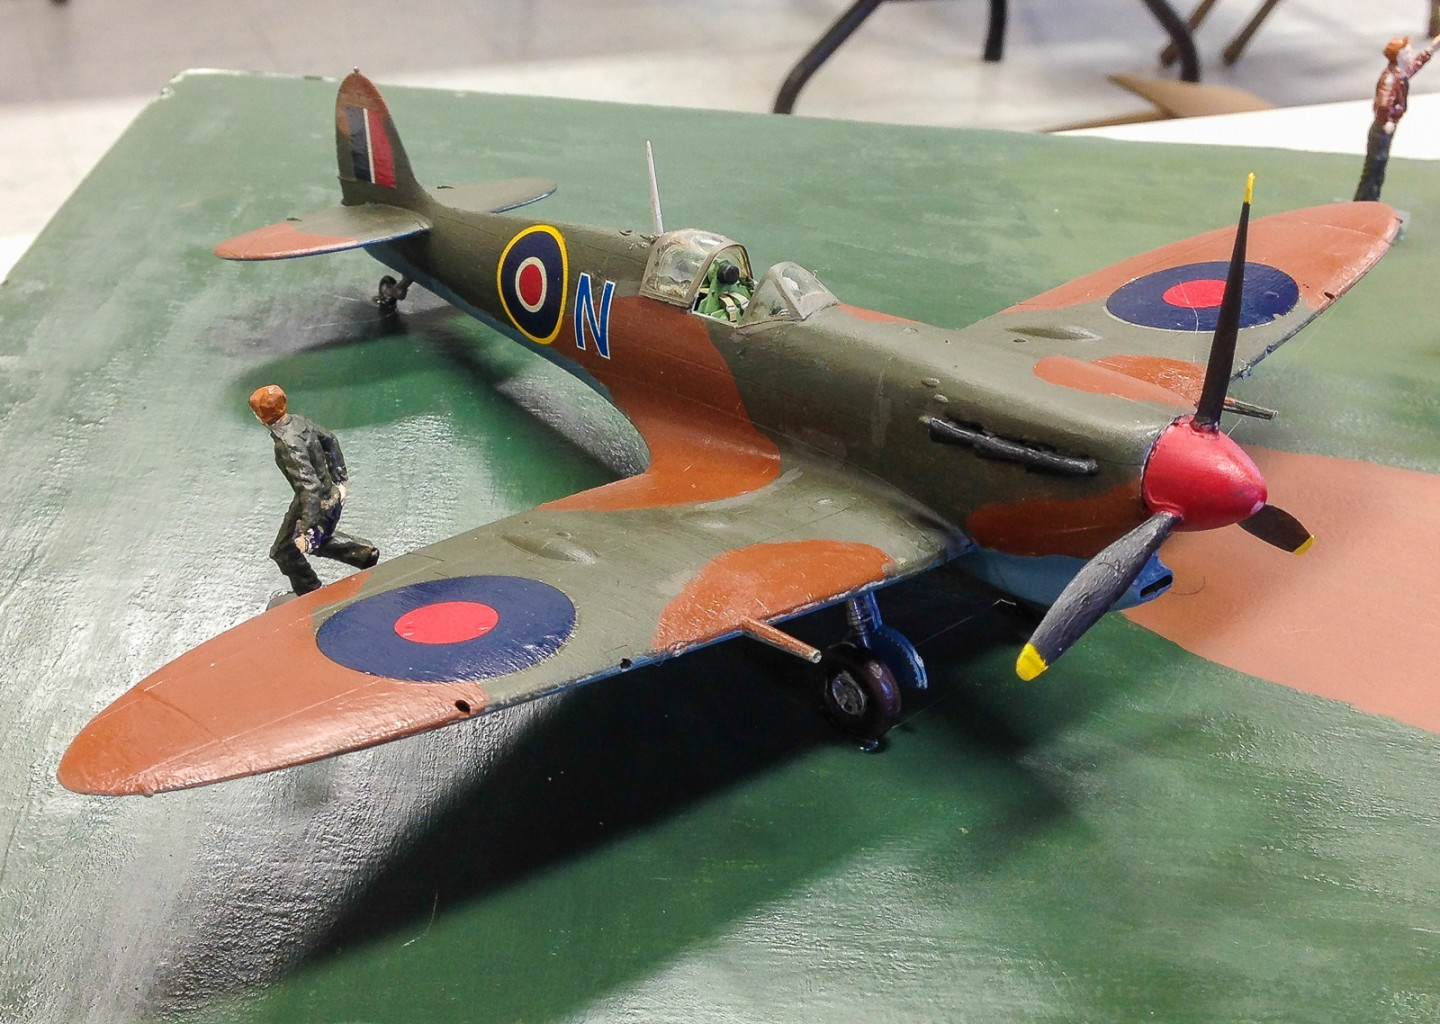 This British fighter joined the B-17 on Brian's WWII diorama display.